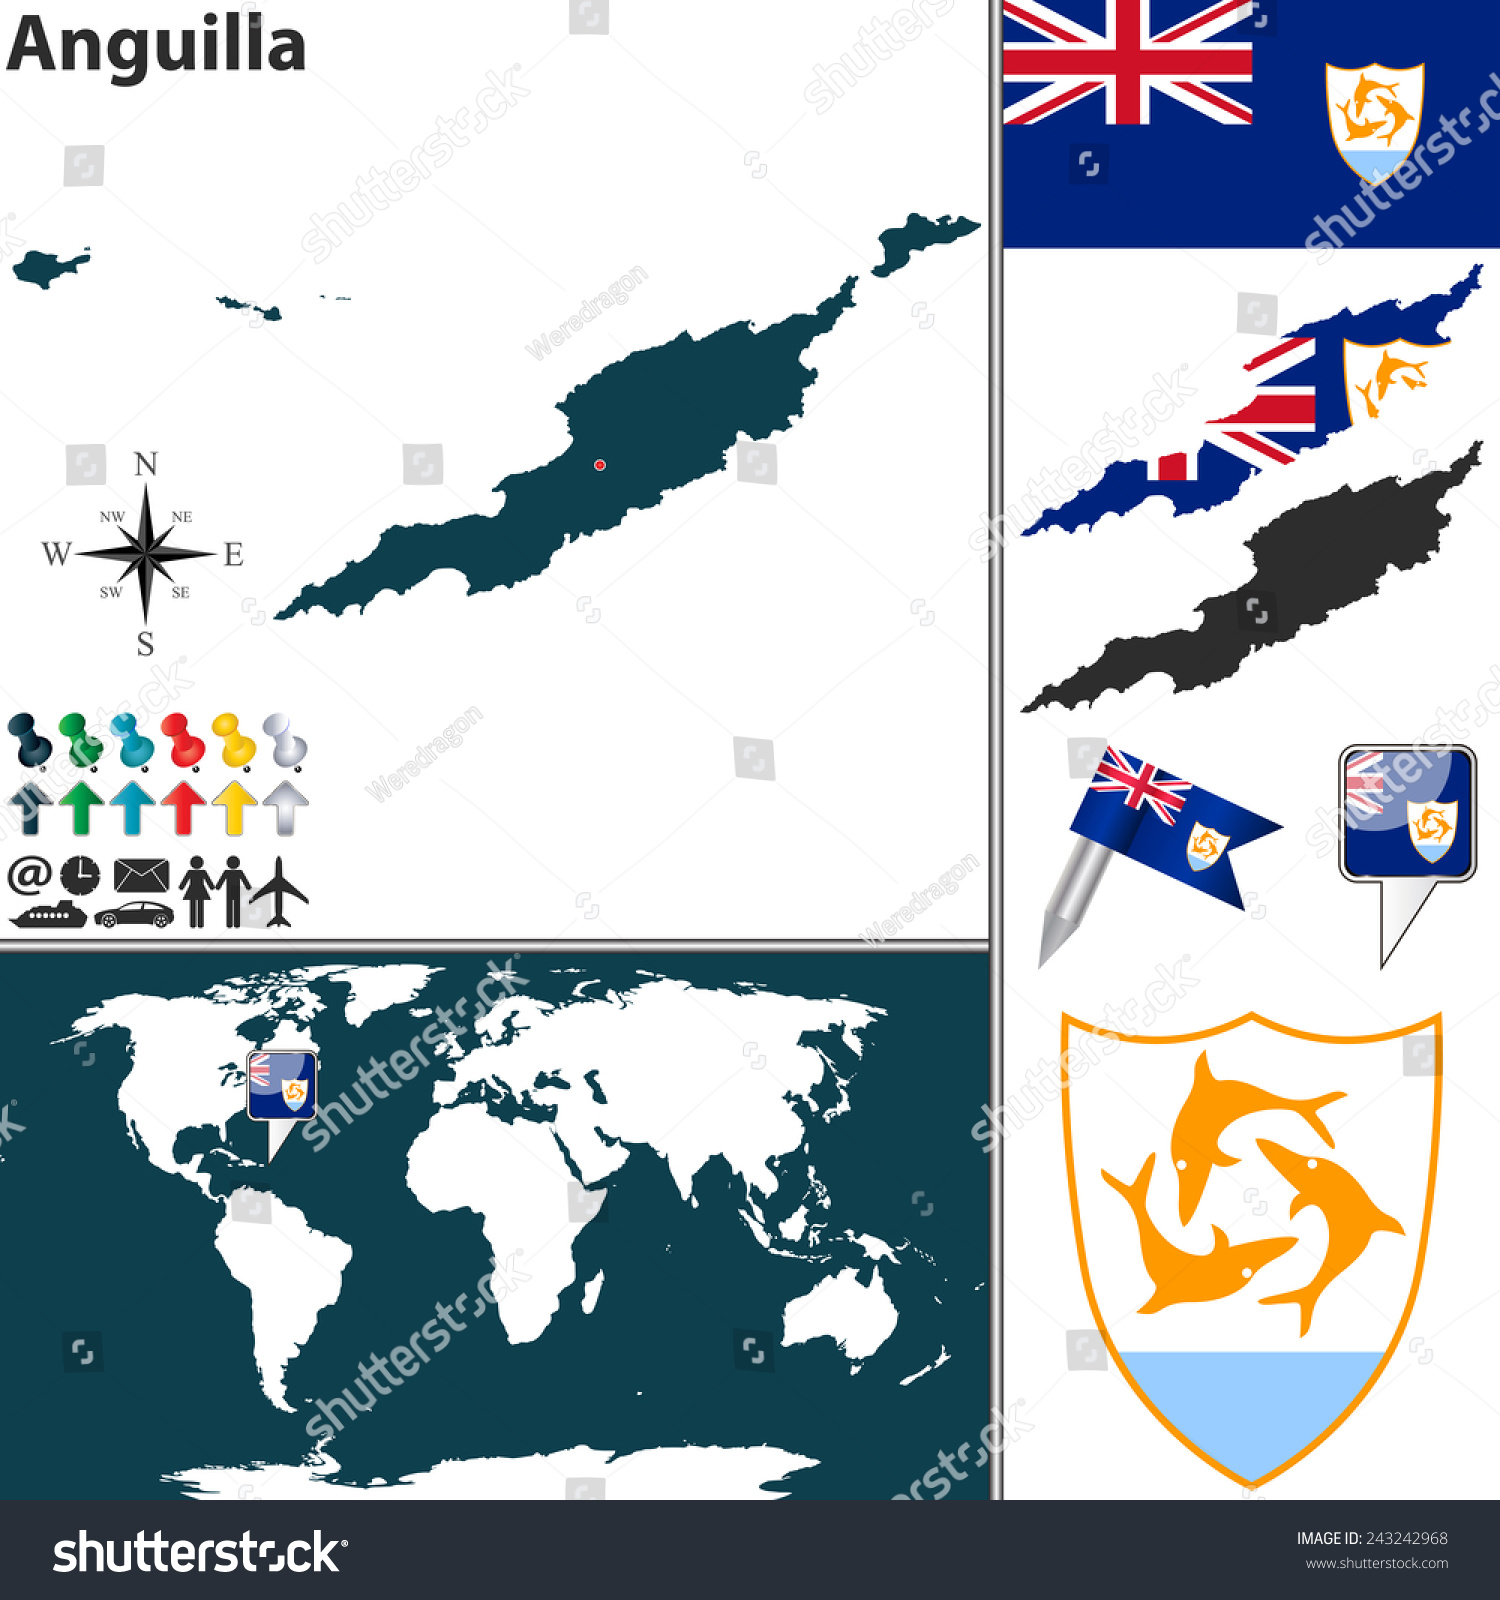 Vector Map Anguilla Coat Arms Location Stock Vector 243242968